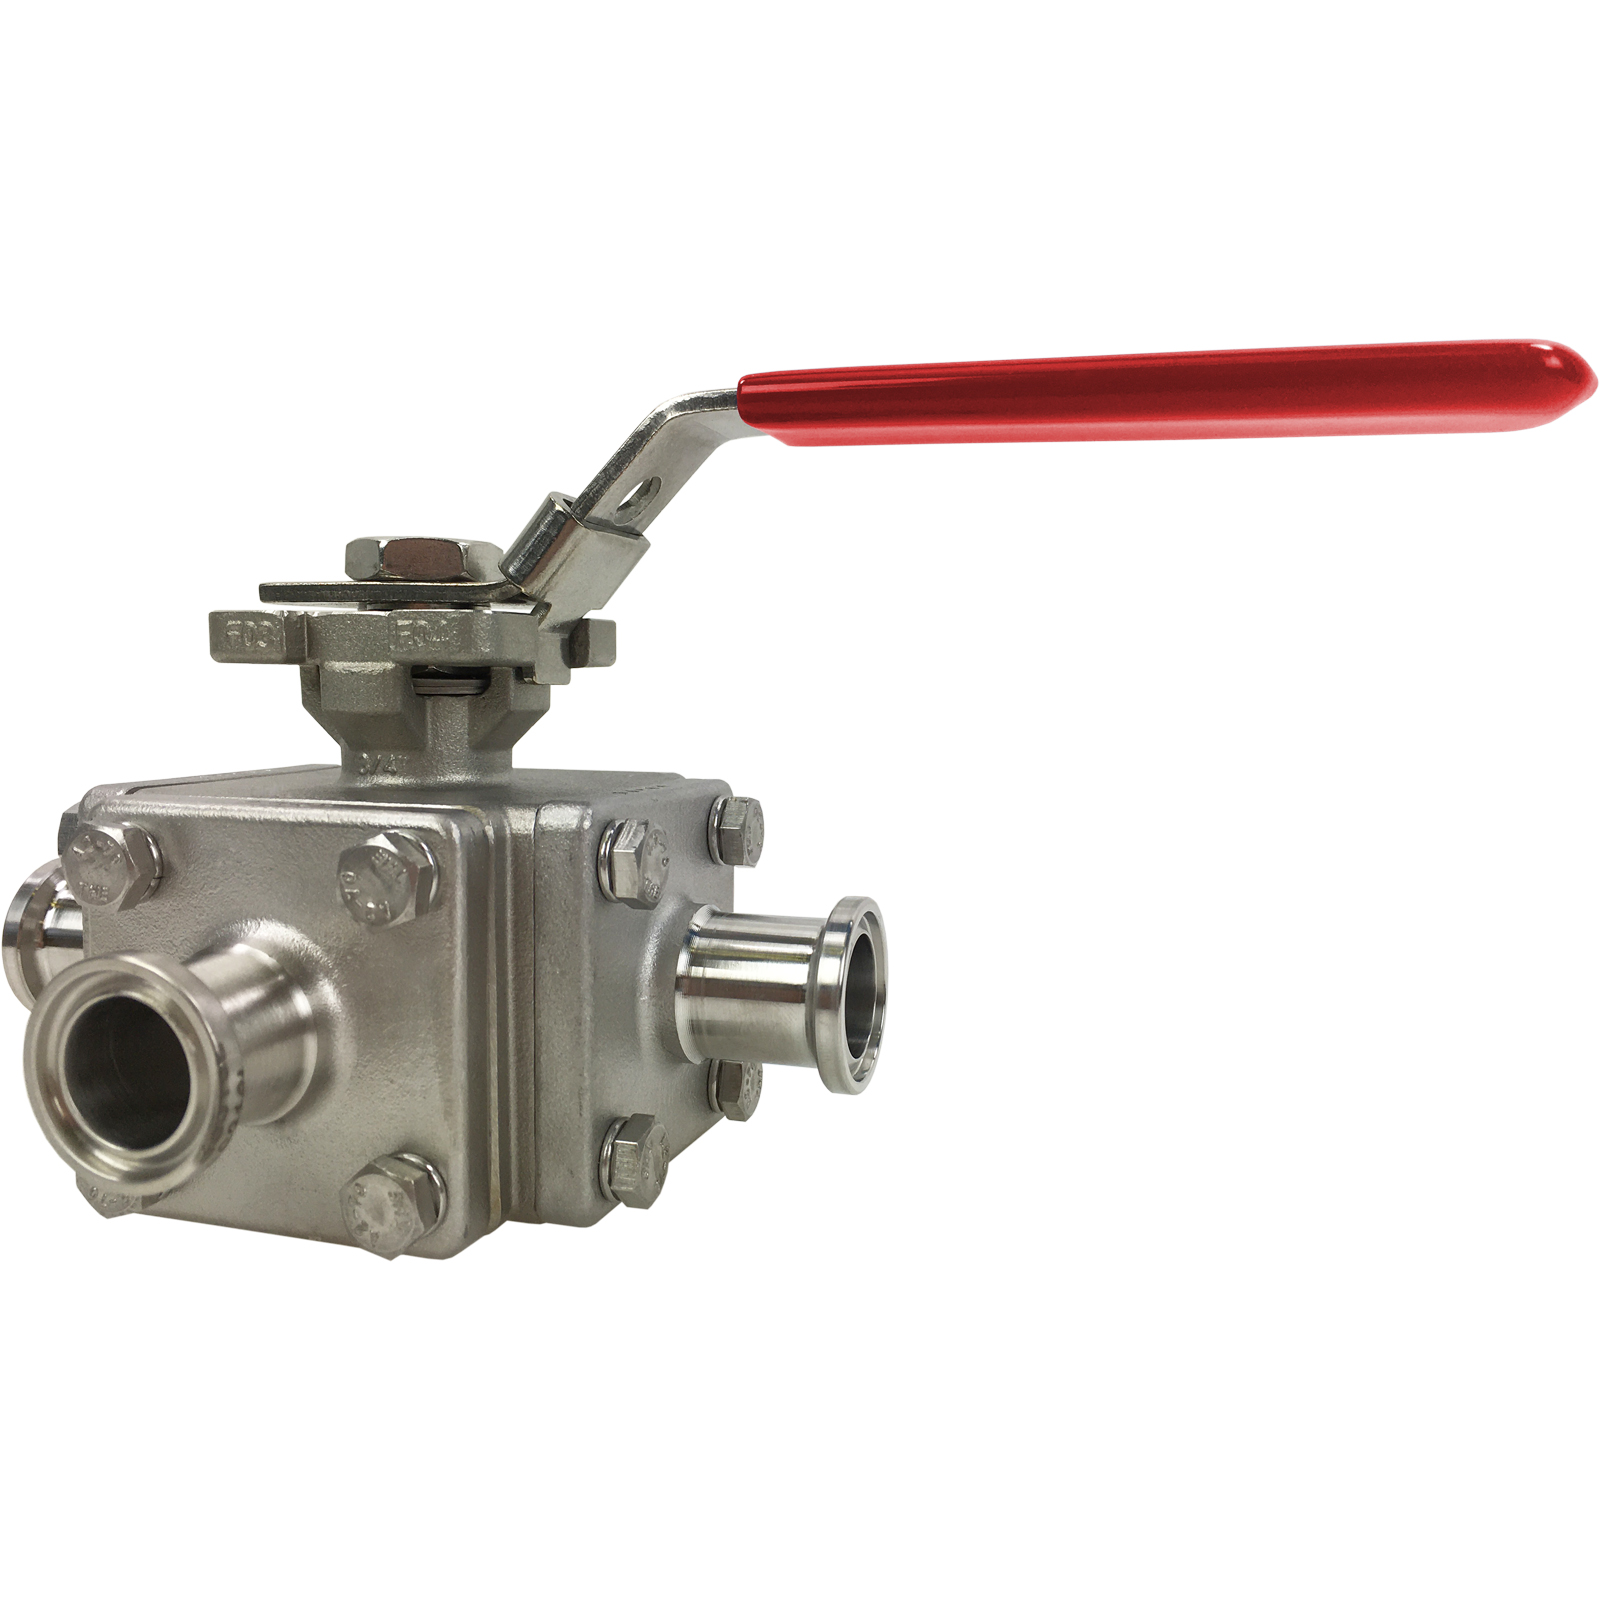 "3/4"" Sanitary 3-Way Ball Valve, T-Port, Direct Mount, Tri-Clamp"